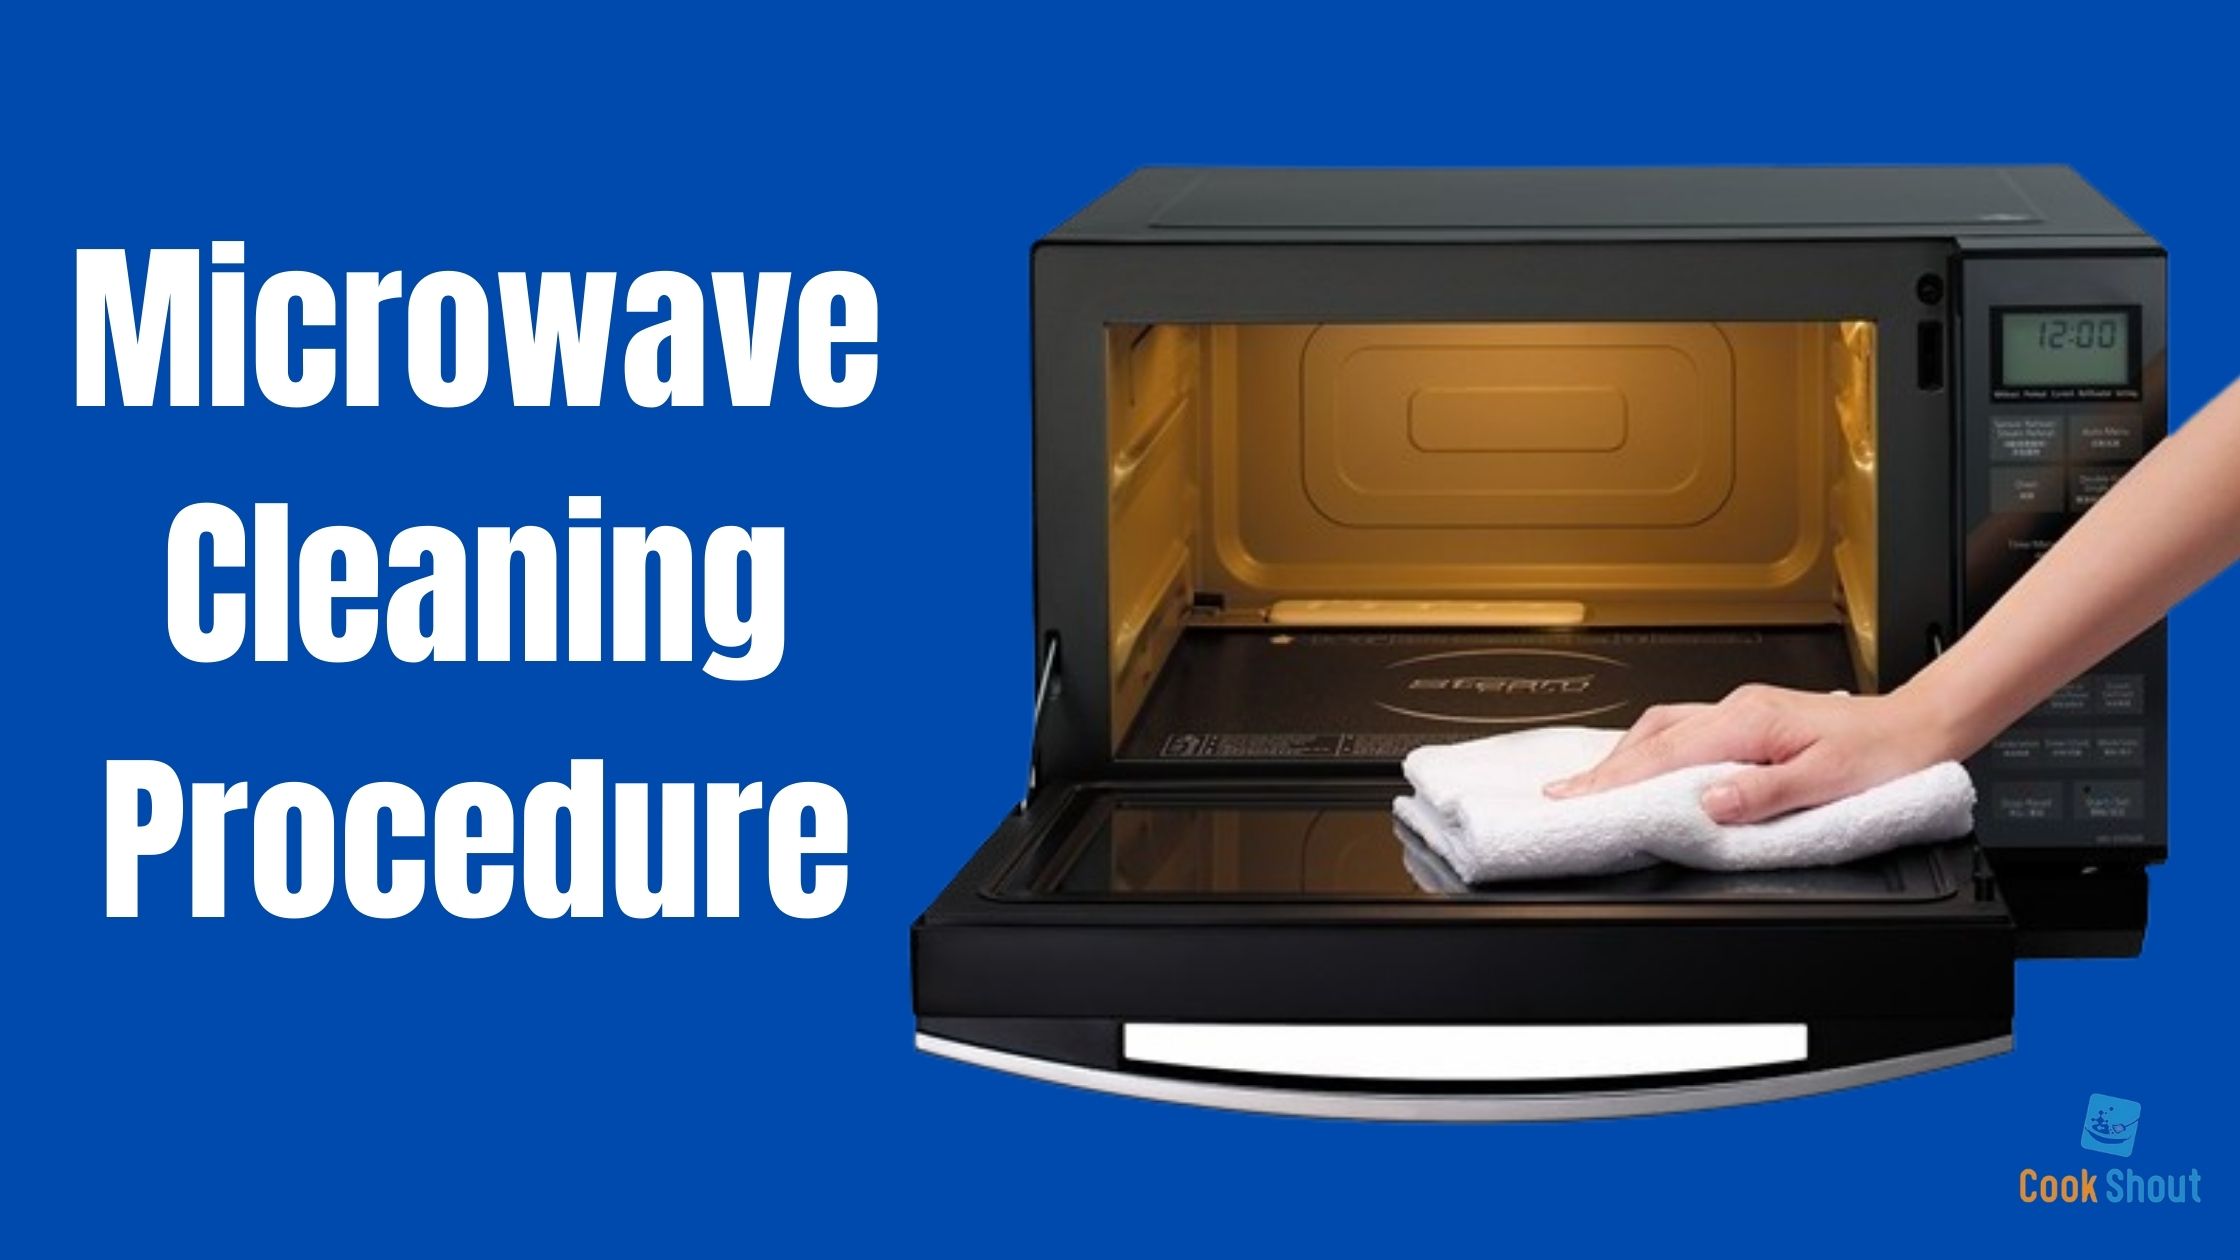 Microwave Cleaning Procedure